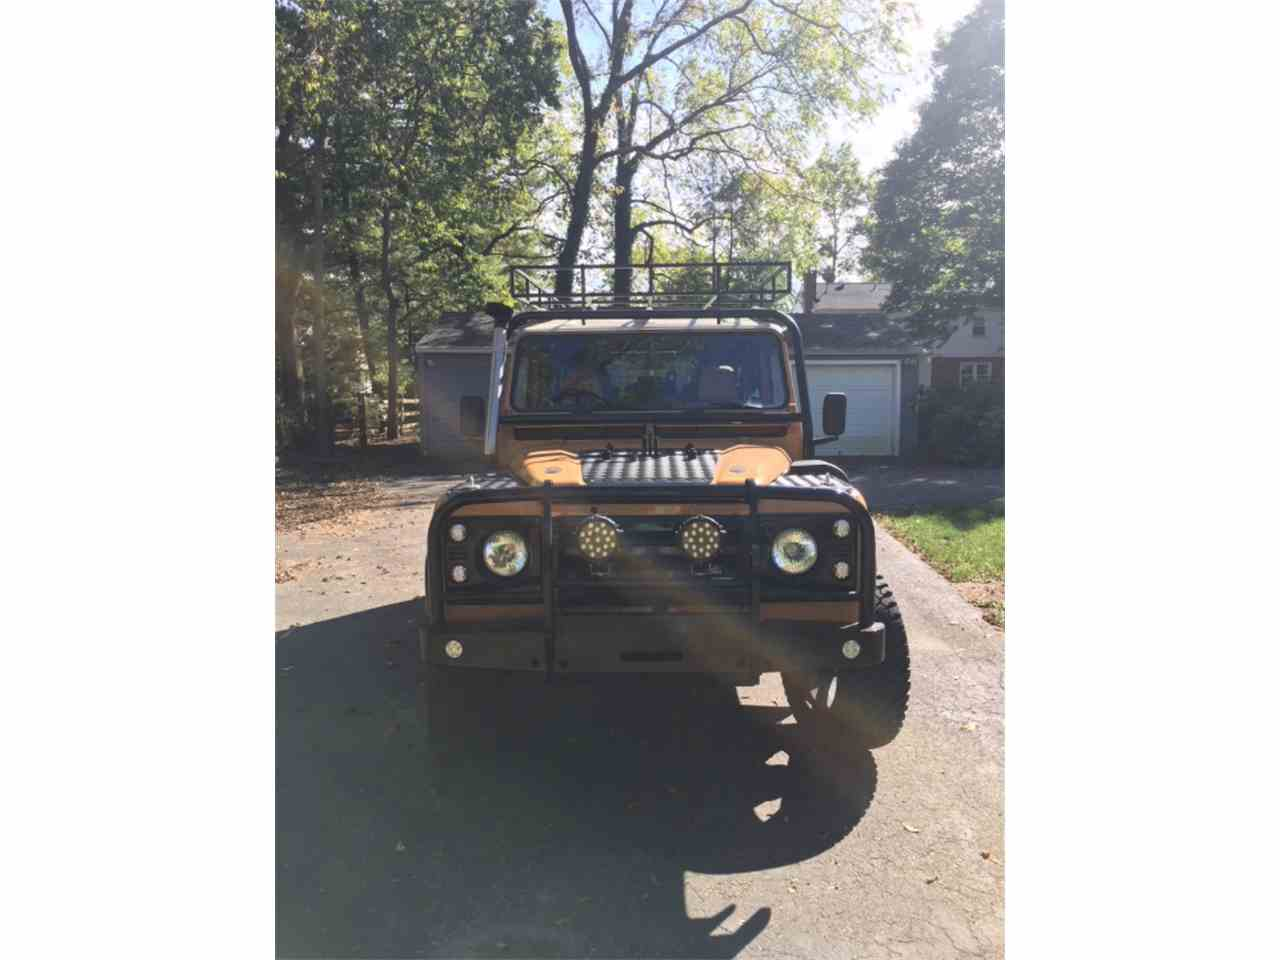 restored sale cars jamesedition for landrover fully land in on rover ohio